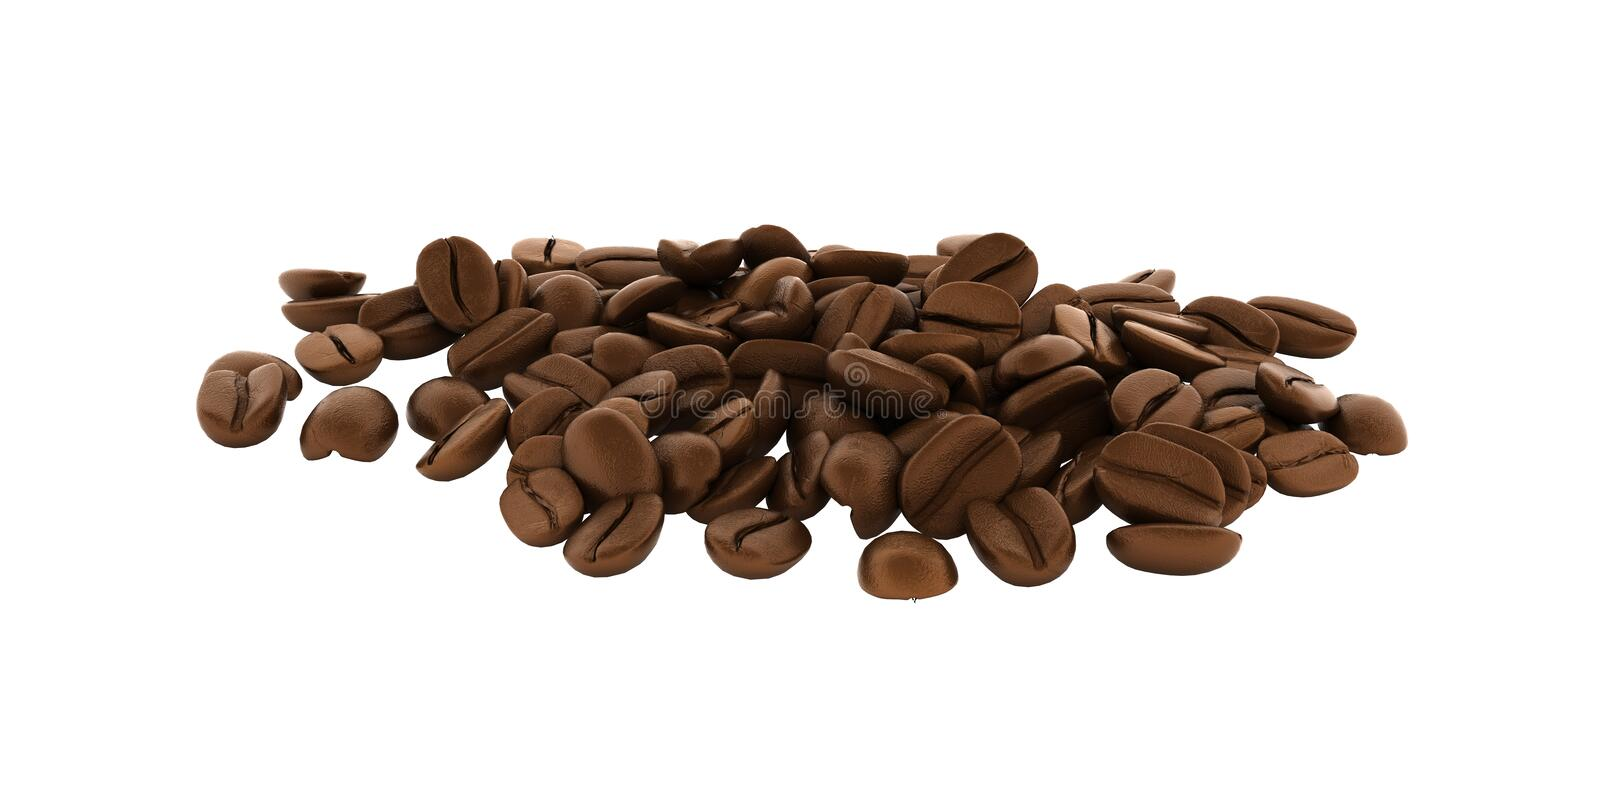 Coffee beans without shadow on white background 3d stock illustration